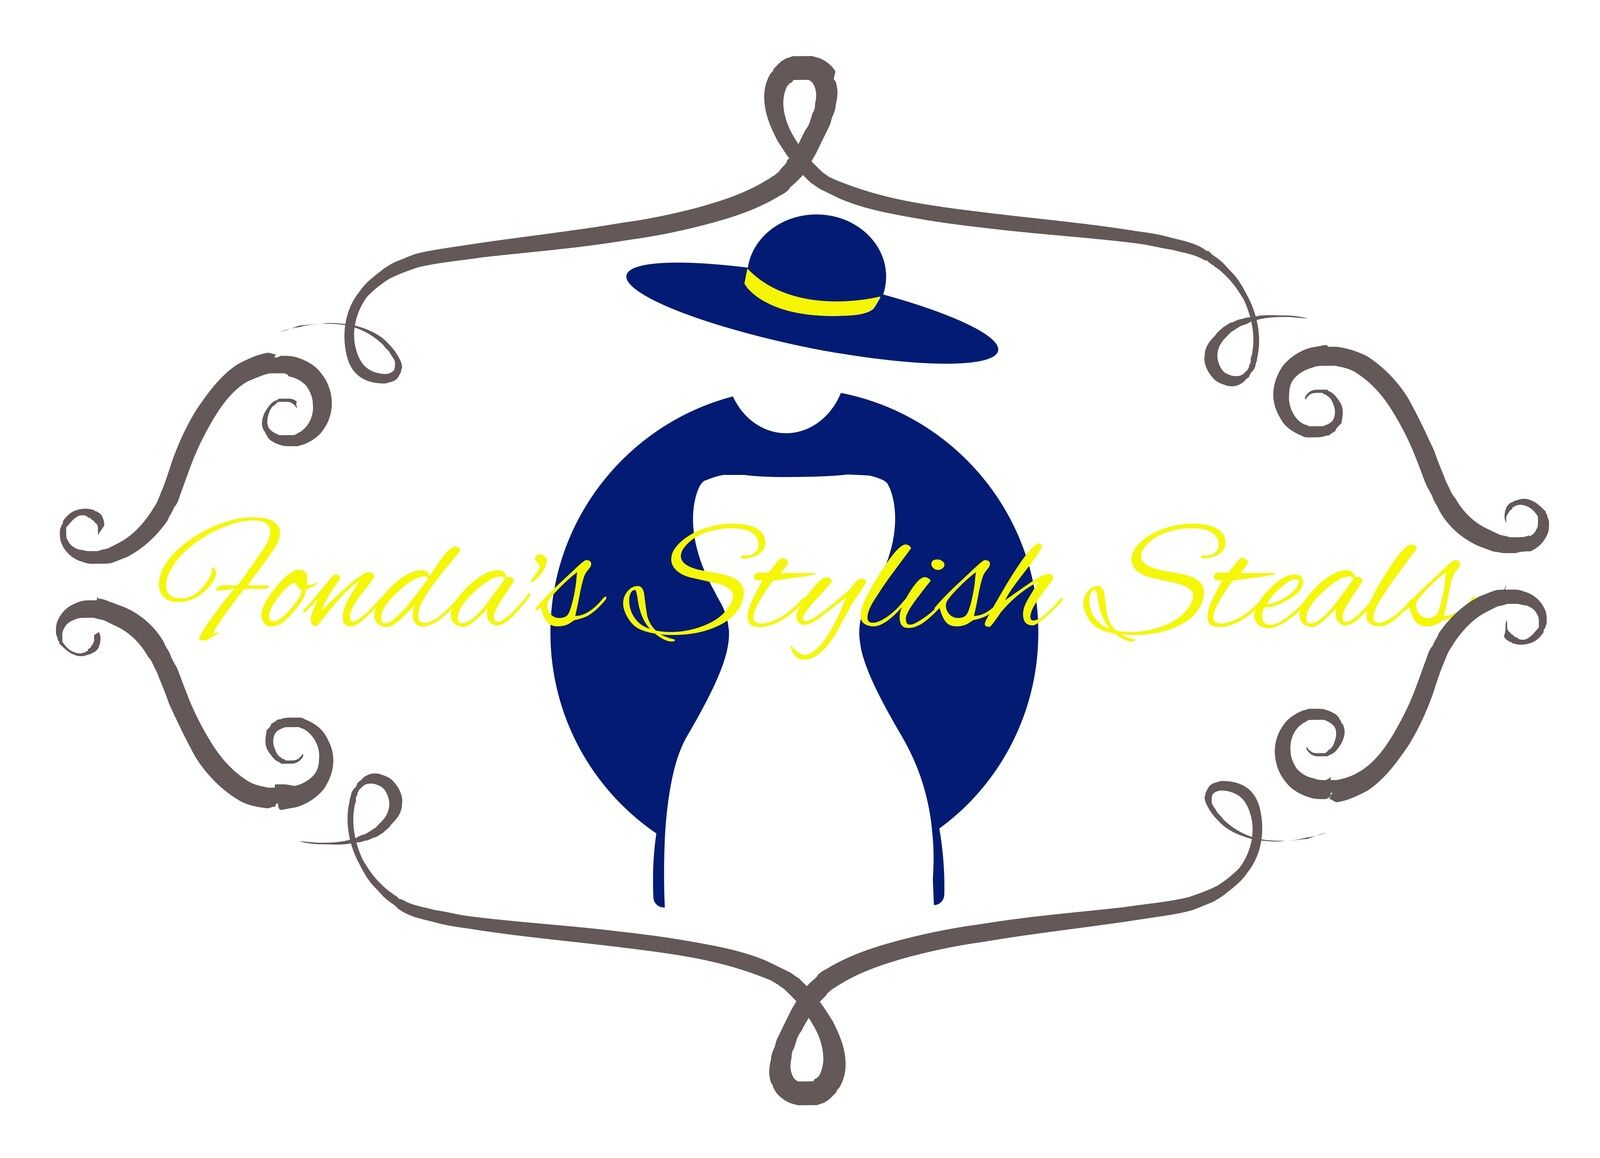 Fondas Stylish Steals